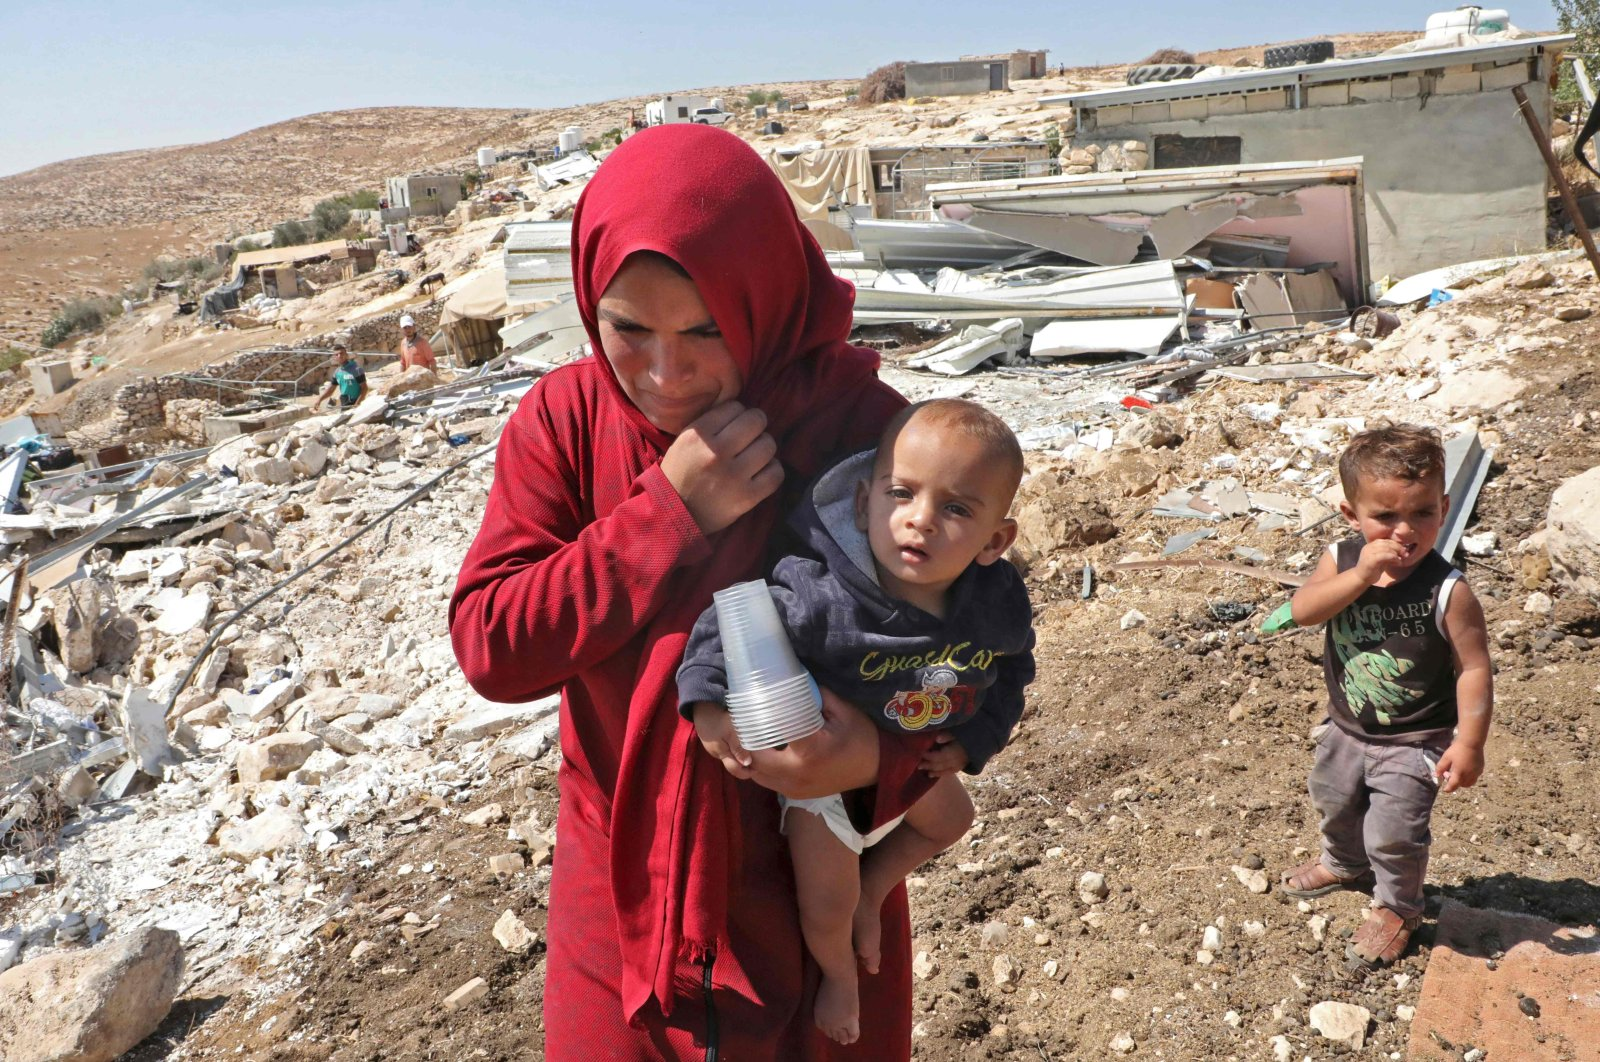 A Palestinian woman walks carrying a baby past wreckage of mobile homes built with European Union funding and destroyed by Israeli forces in the village of Mufagara south of Yatta near Hebron, as they were purportedly built without Israeli authorization, occupied West Bank, Sept. 11, 2019. (AFP Photo)